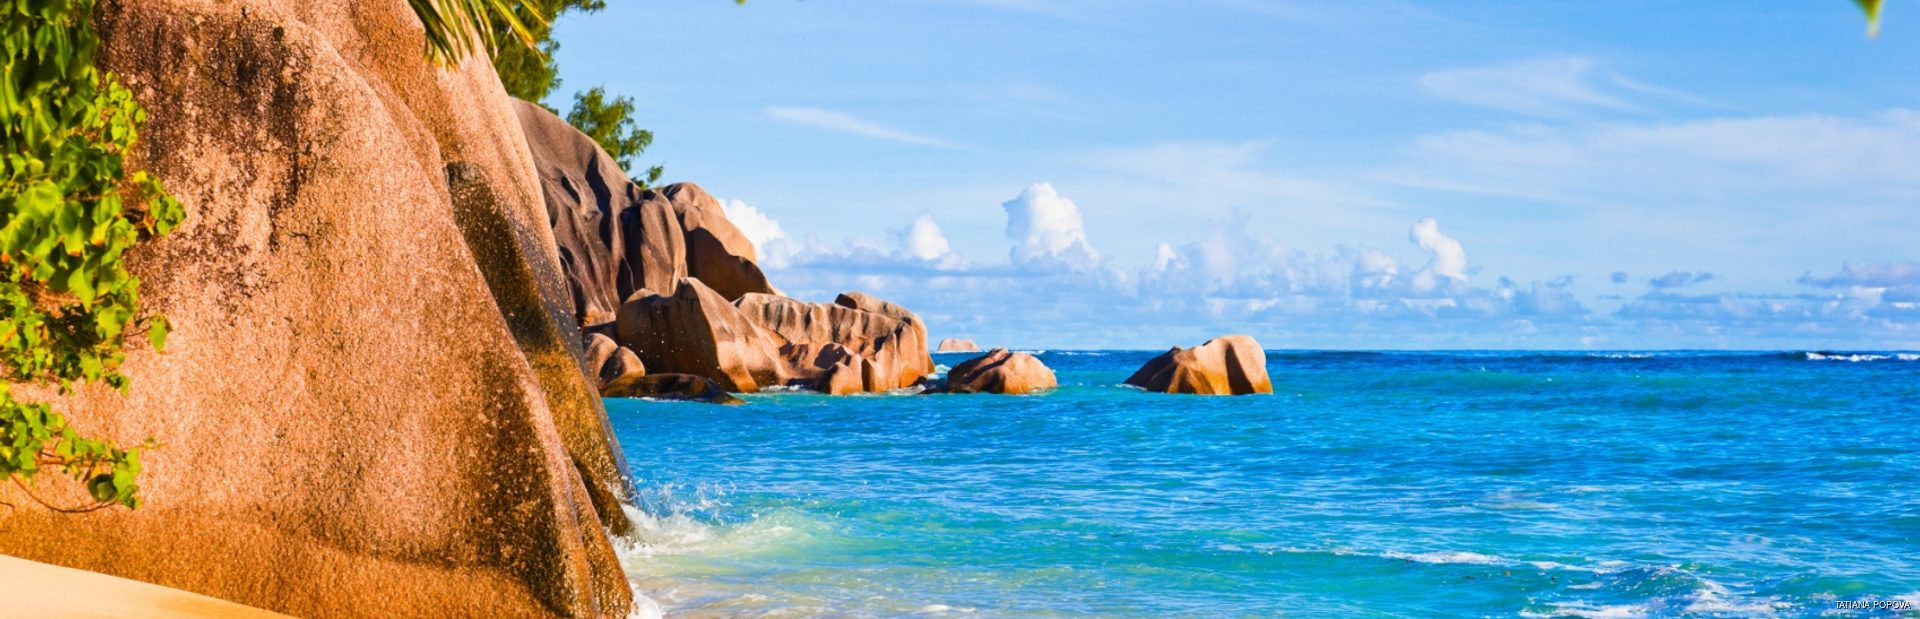 Fall in Love with Anse Source d'Argent